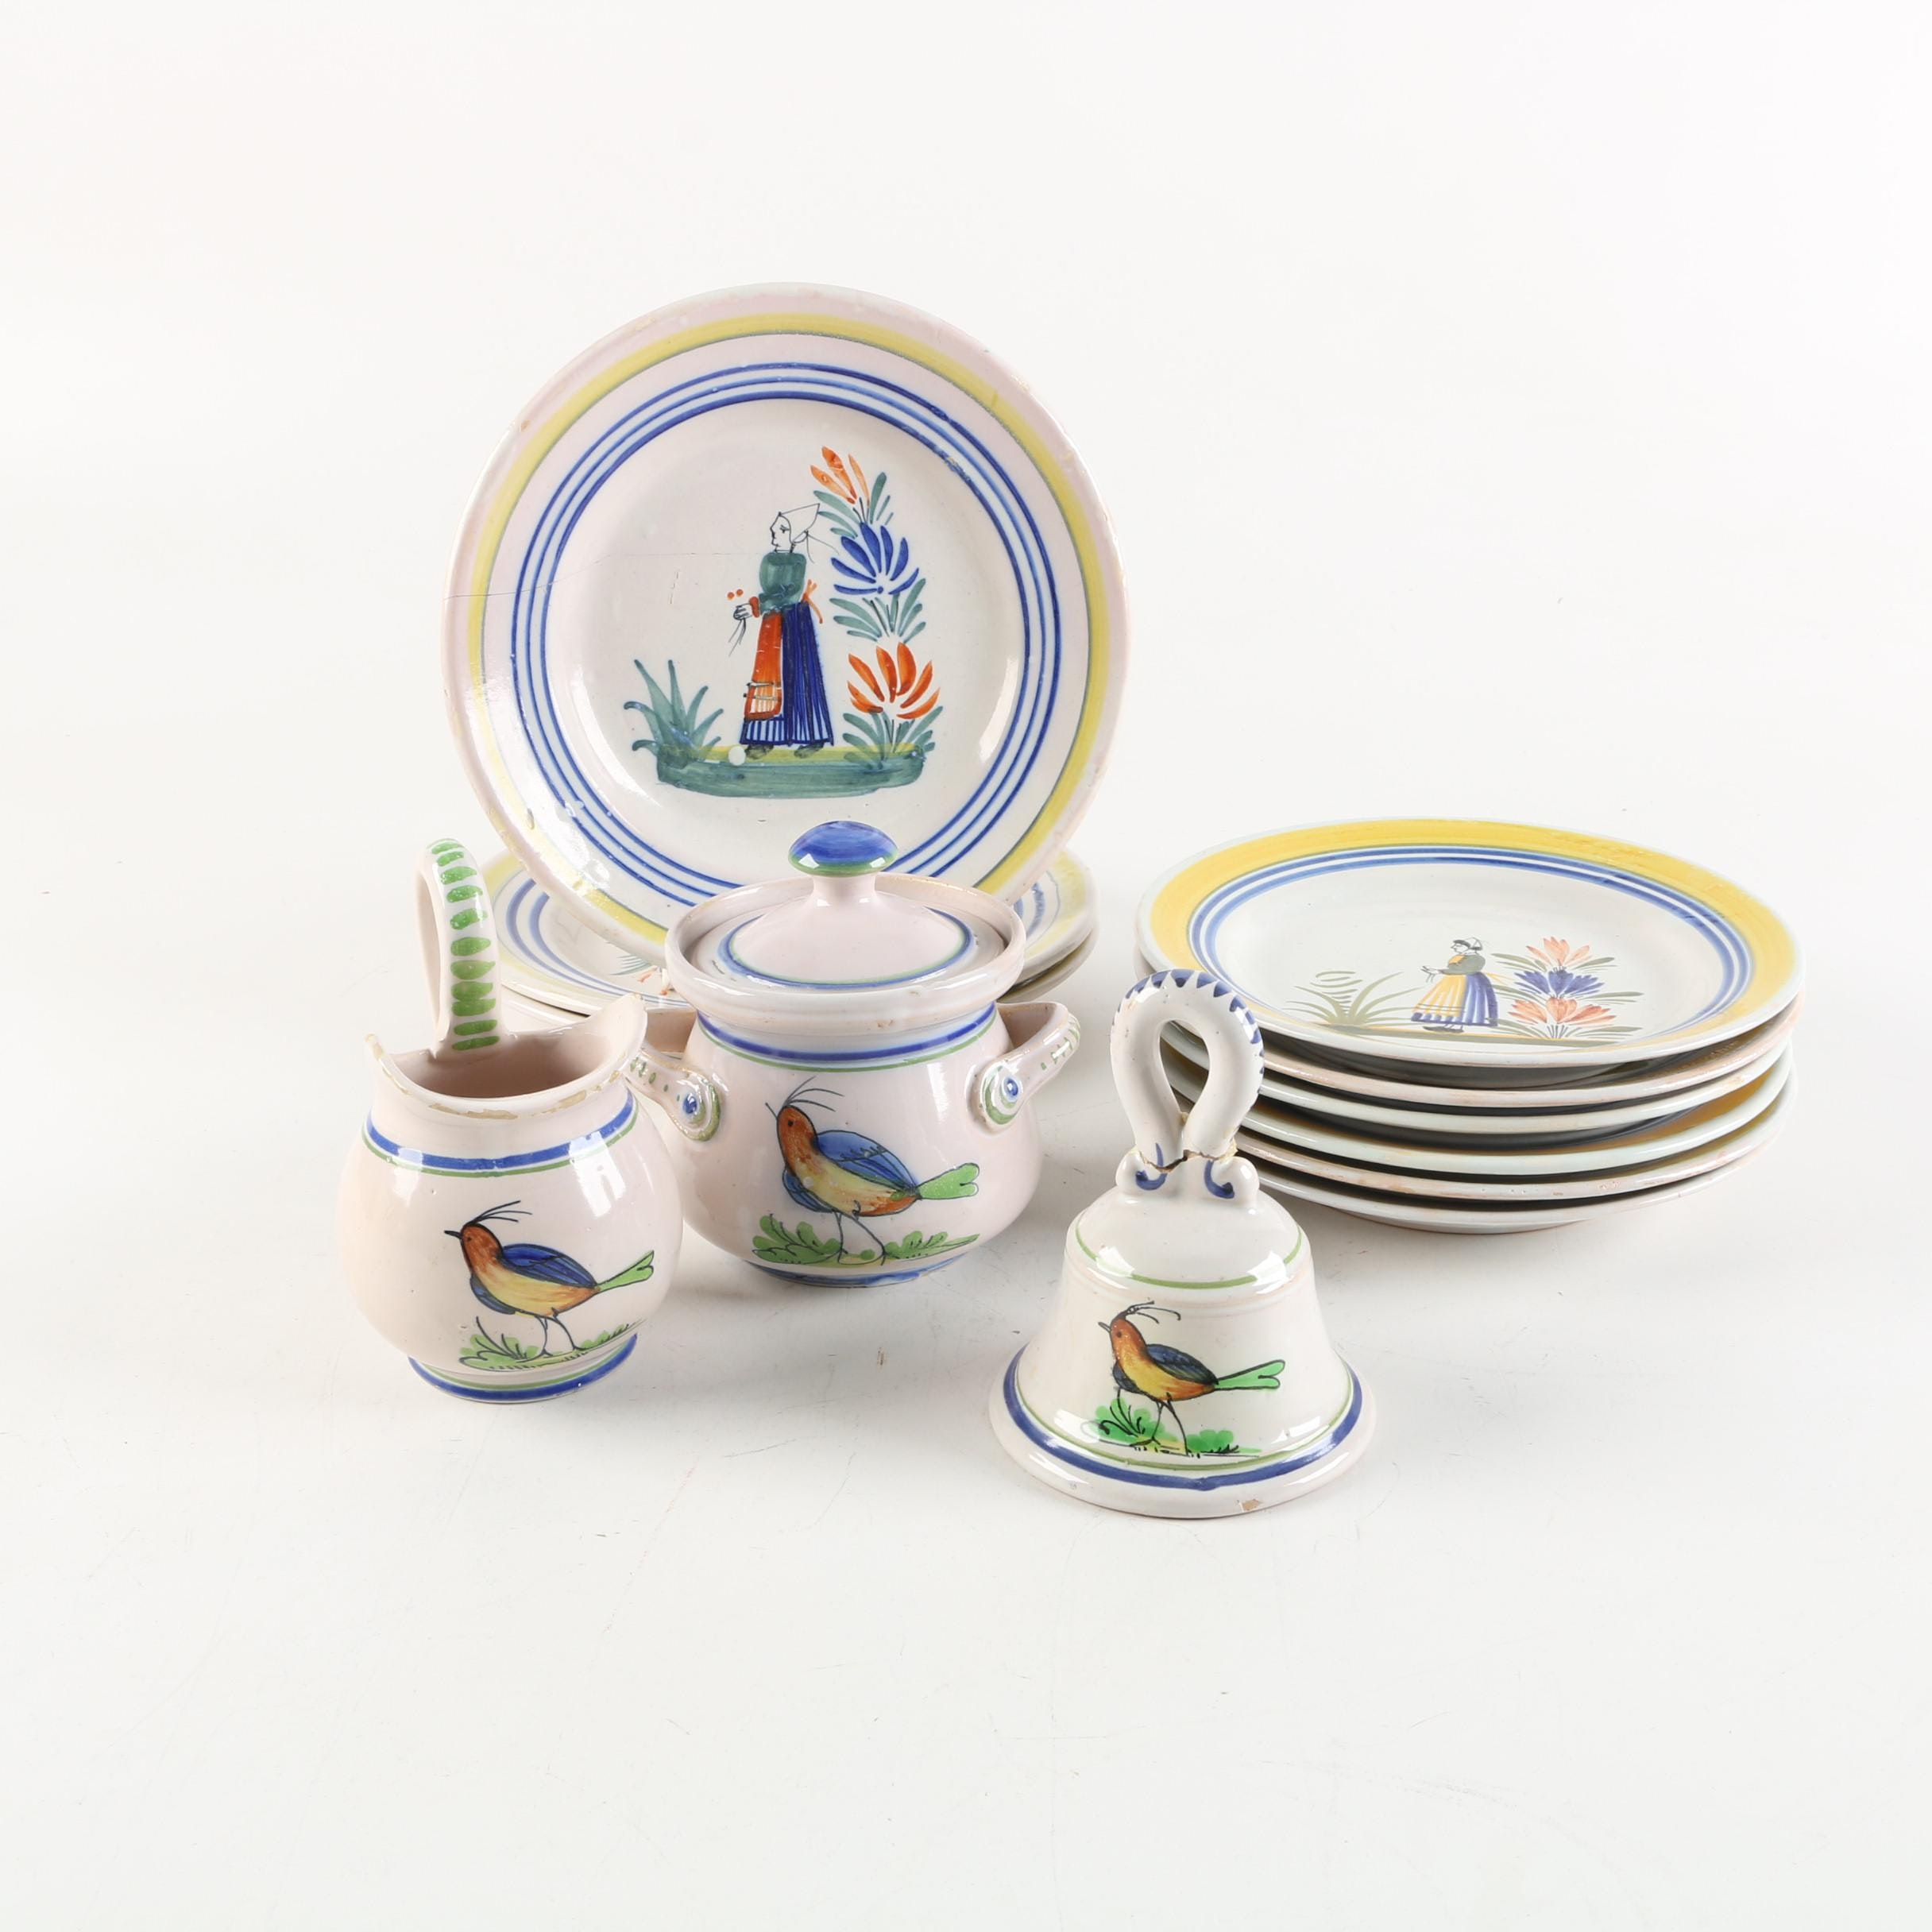 Fratelli Fanciullacci and Henriot Quimper Faience Tableware and Bell